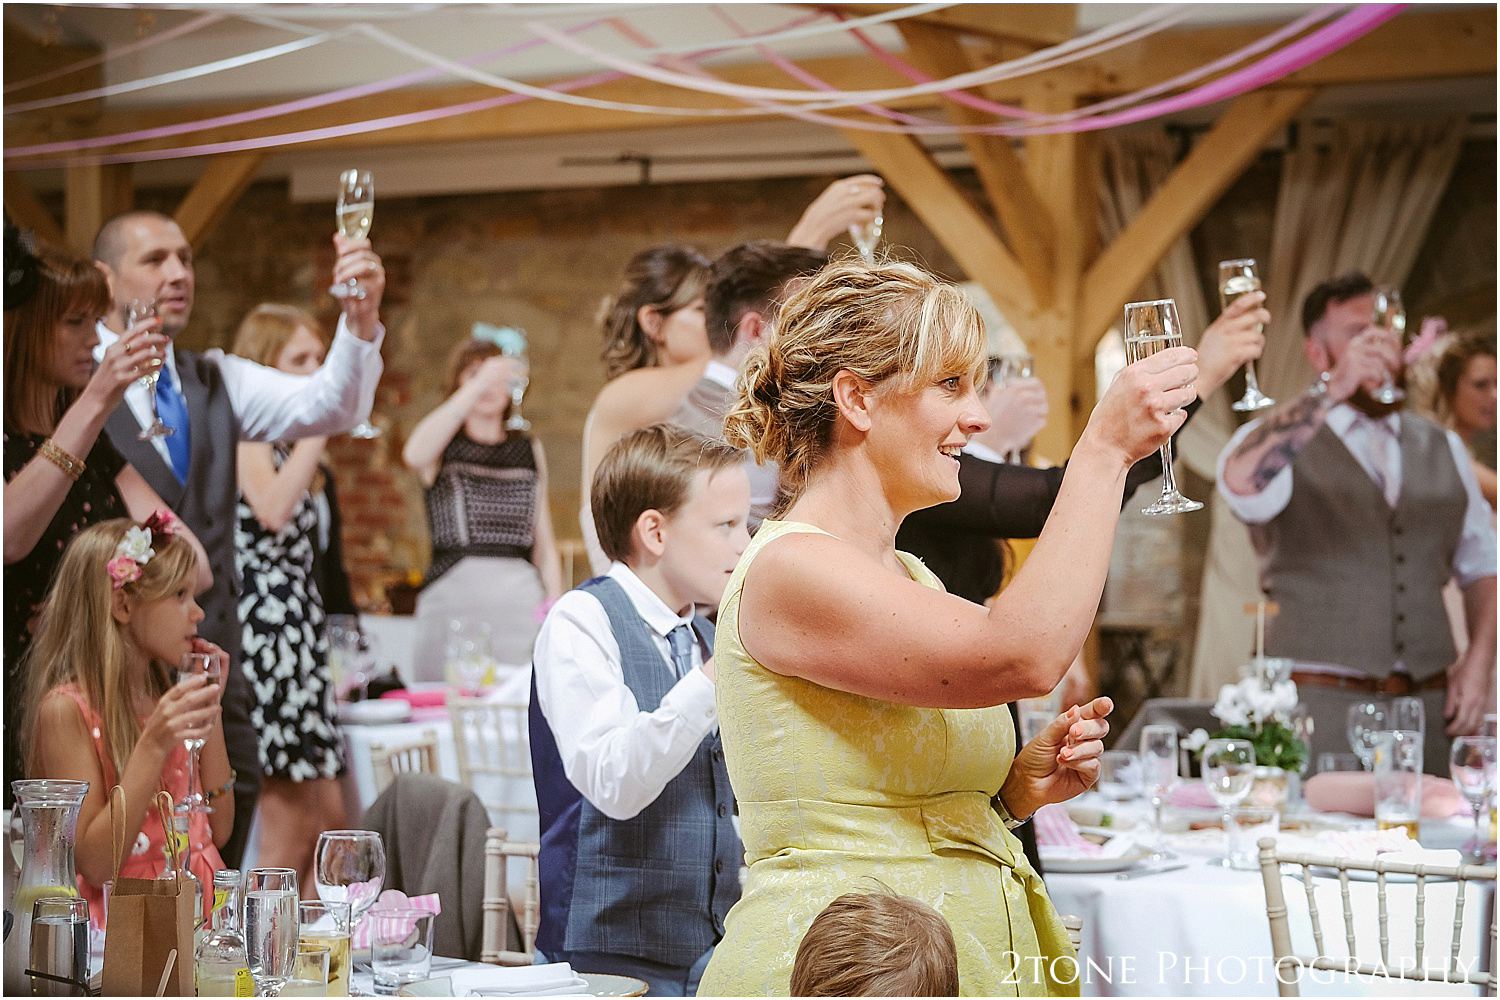 Doxford barns wedding photographer 070.jpg